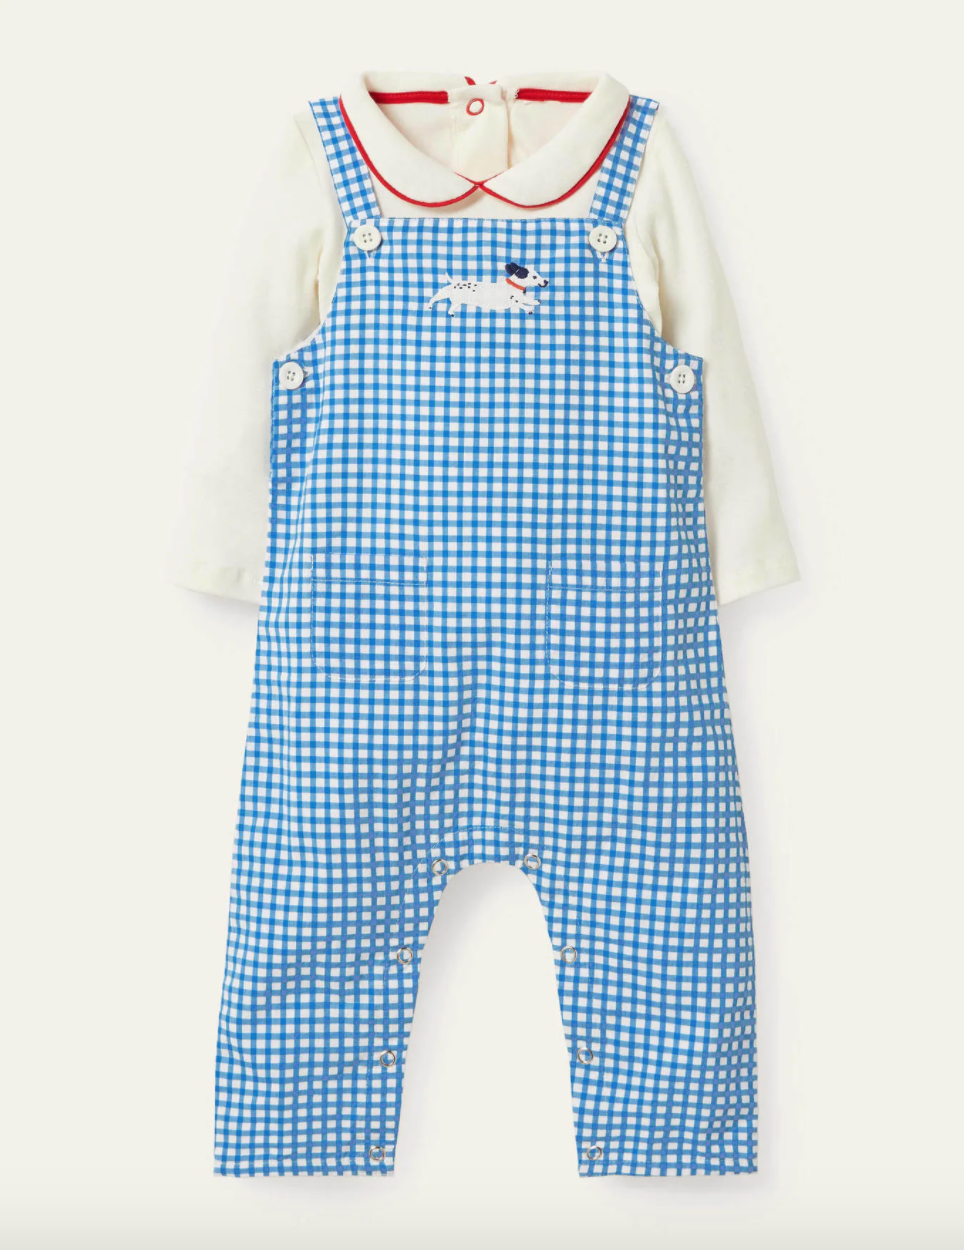 gingham overall outfit with an embroidered dog